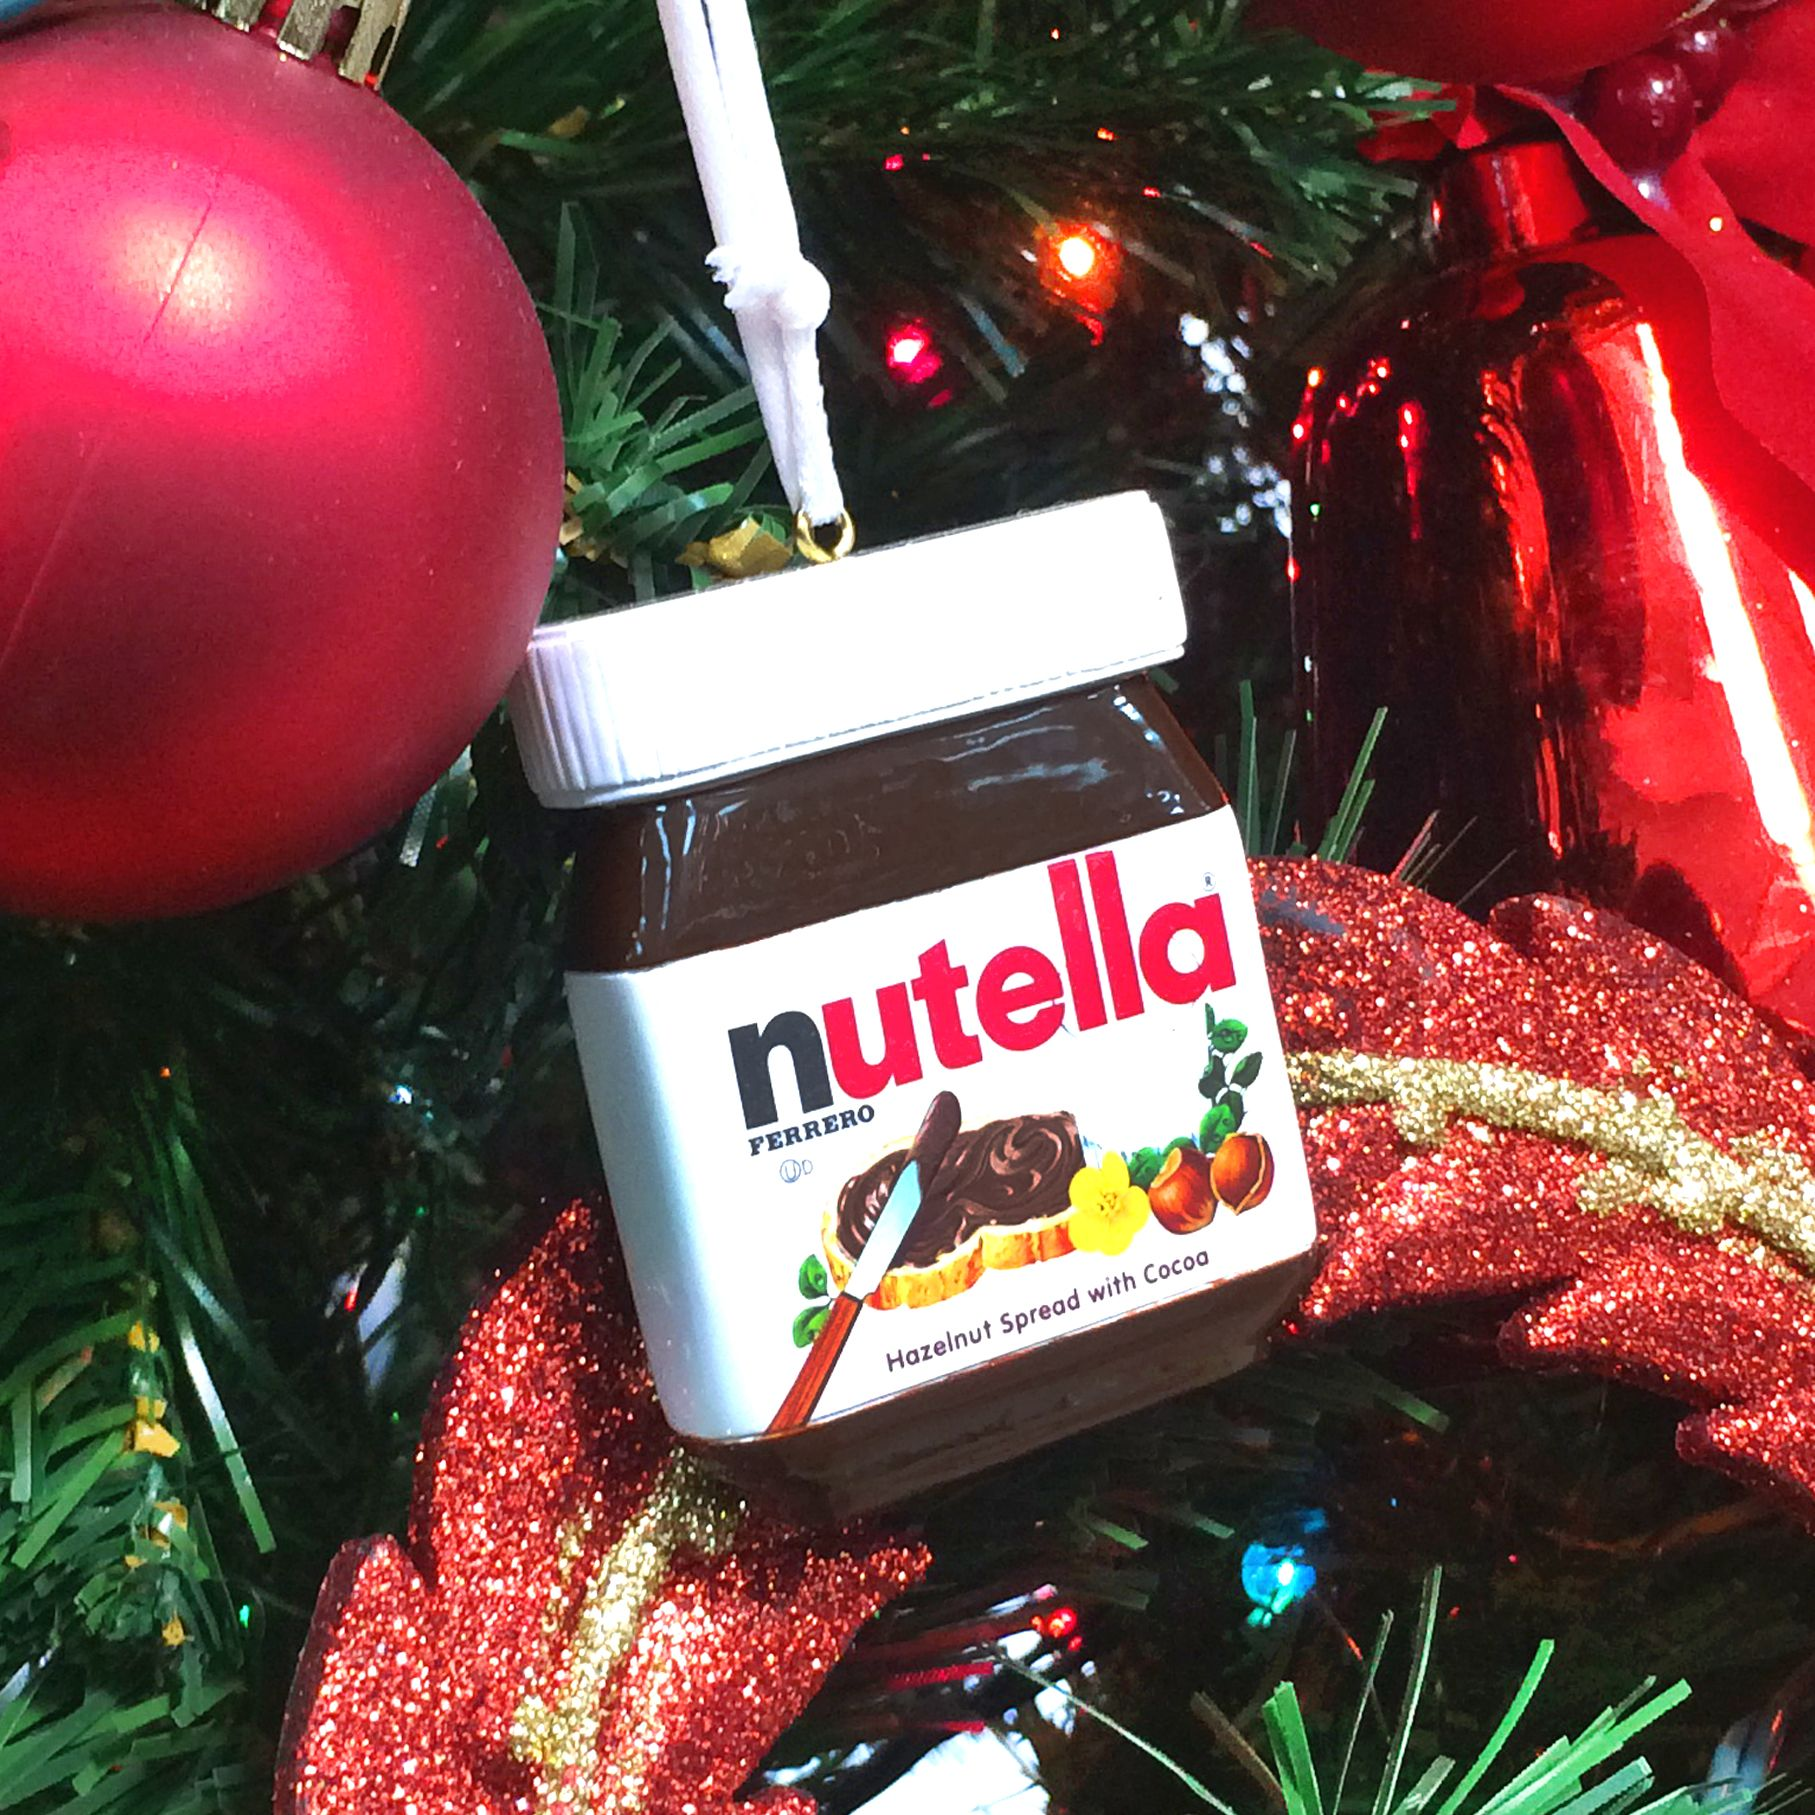 No Tree Is Complete Without The Official Nutella Ornament Nutella Nutella Lover New Years Eve Day